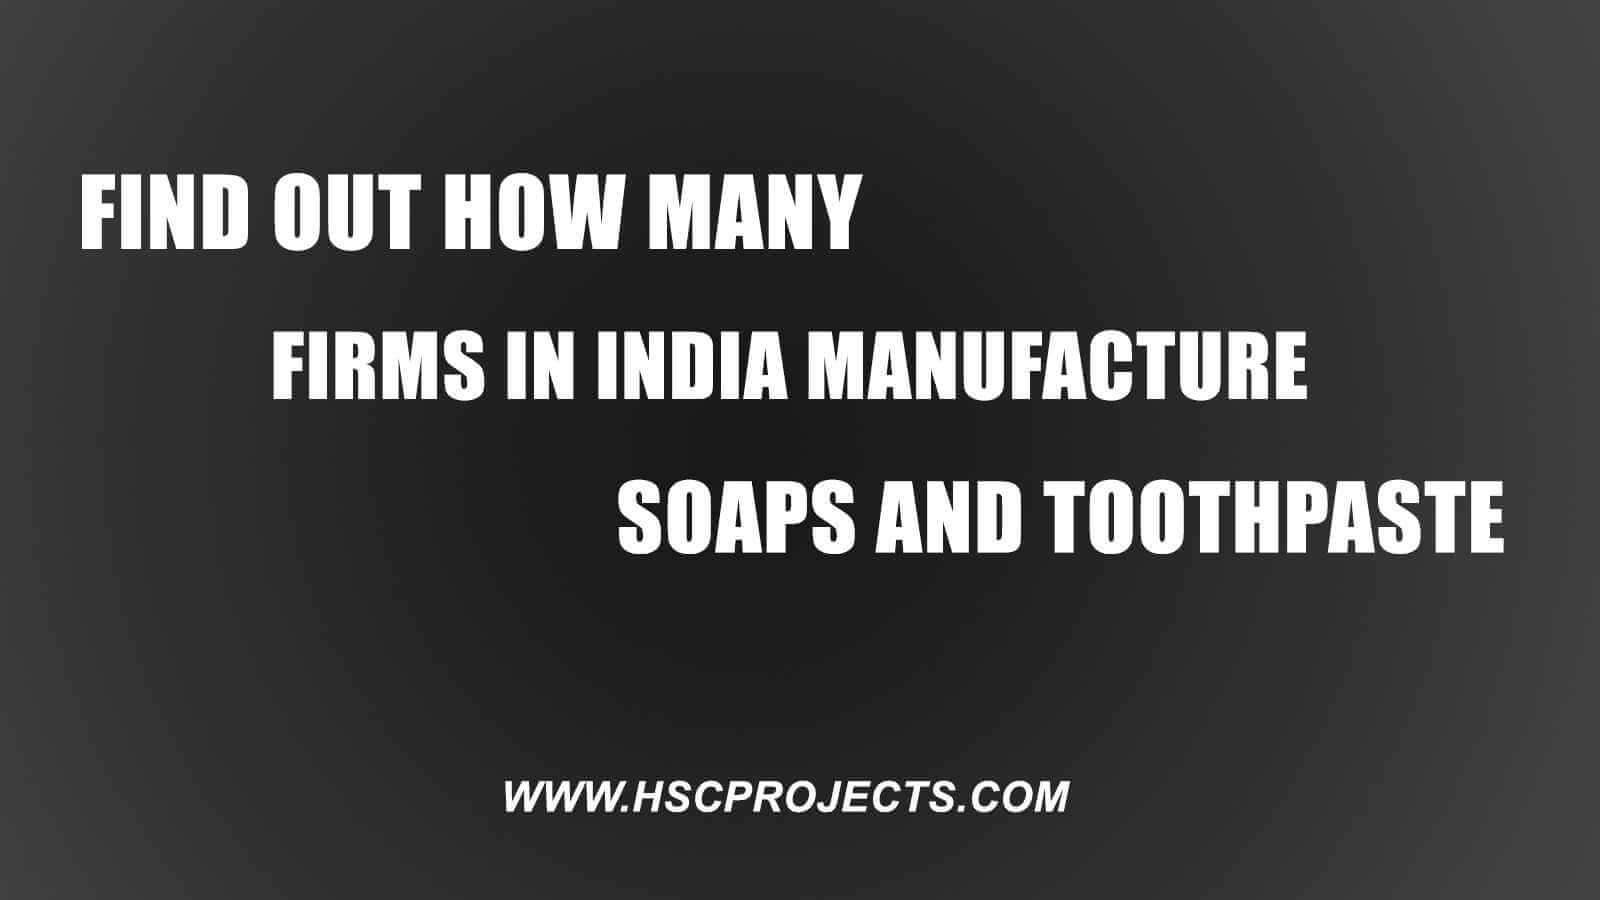 Find Out How Many Firms in India Manufacture Soaps and Tooth Paste